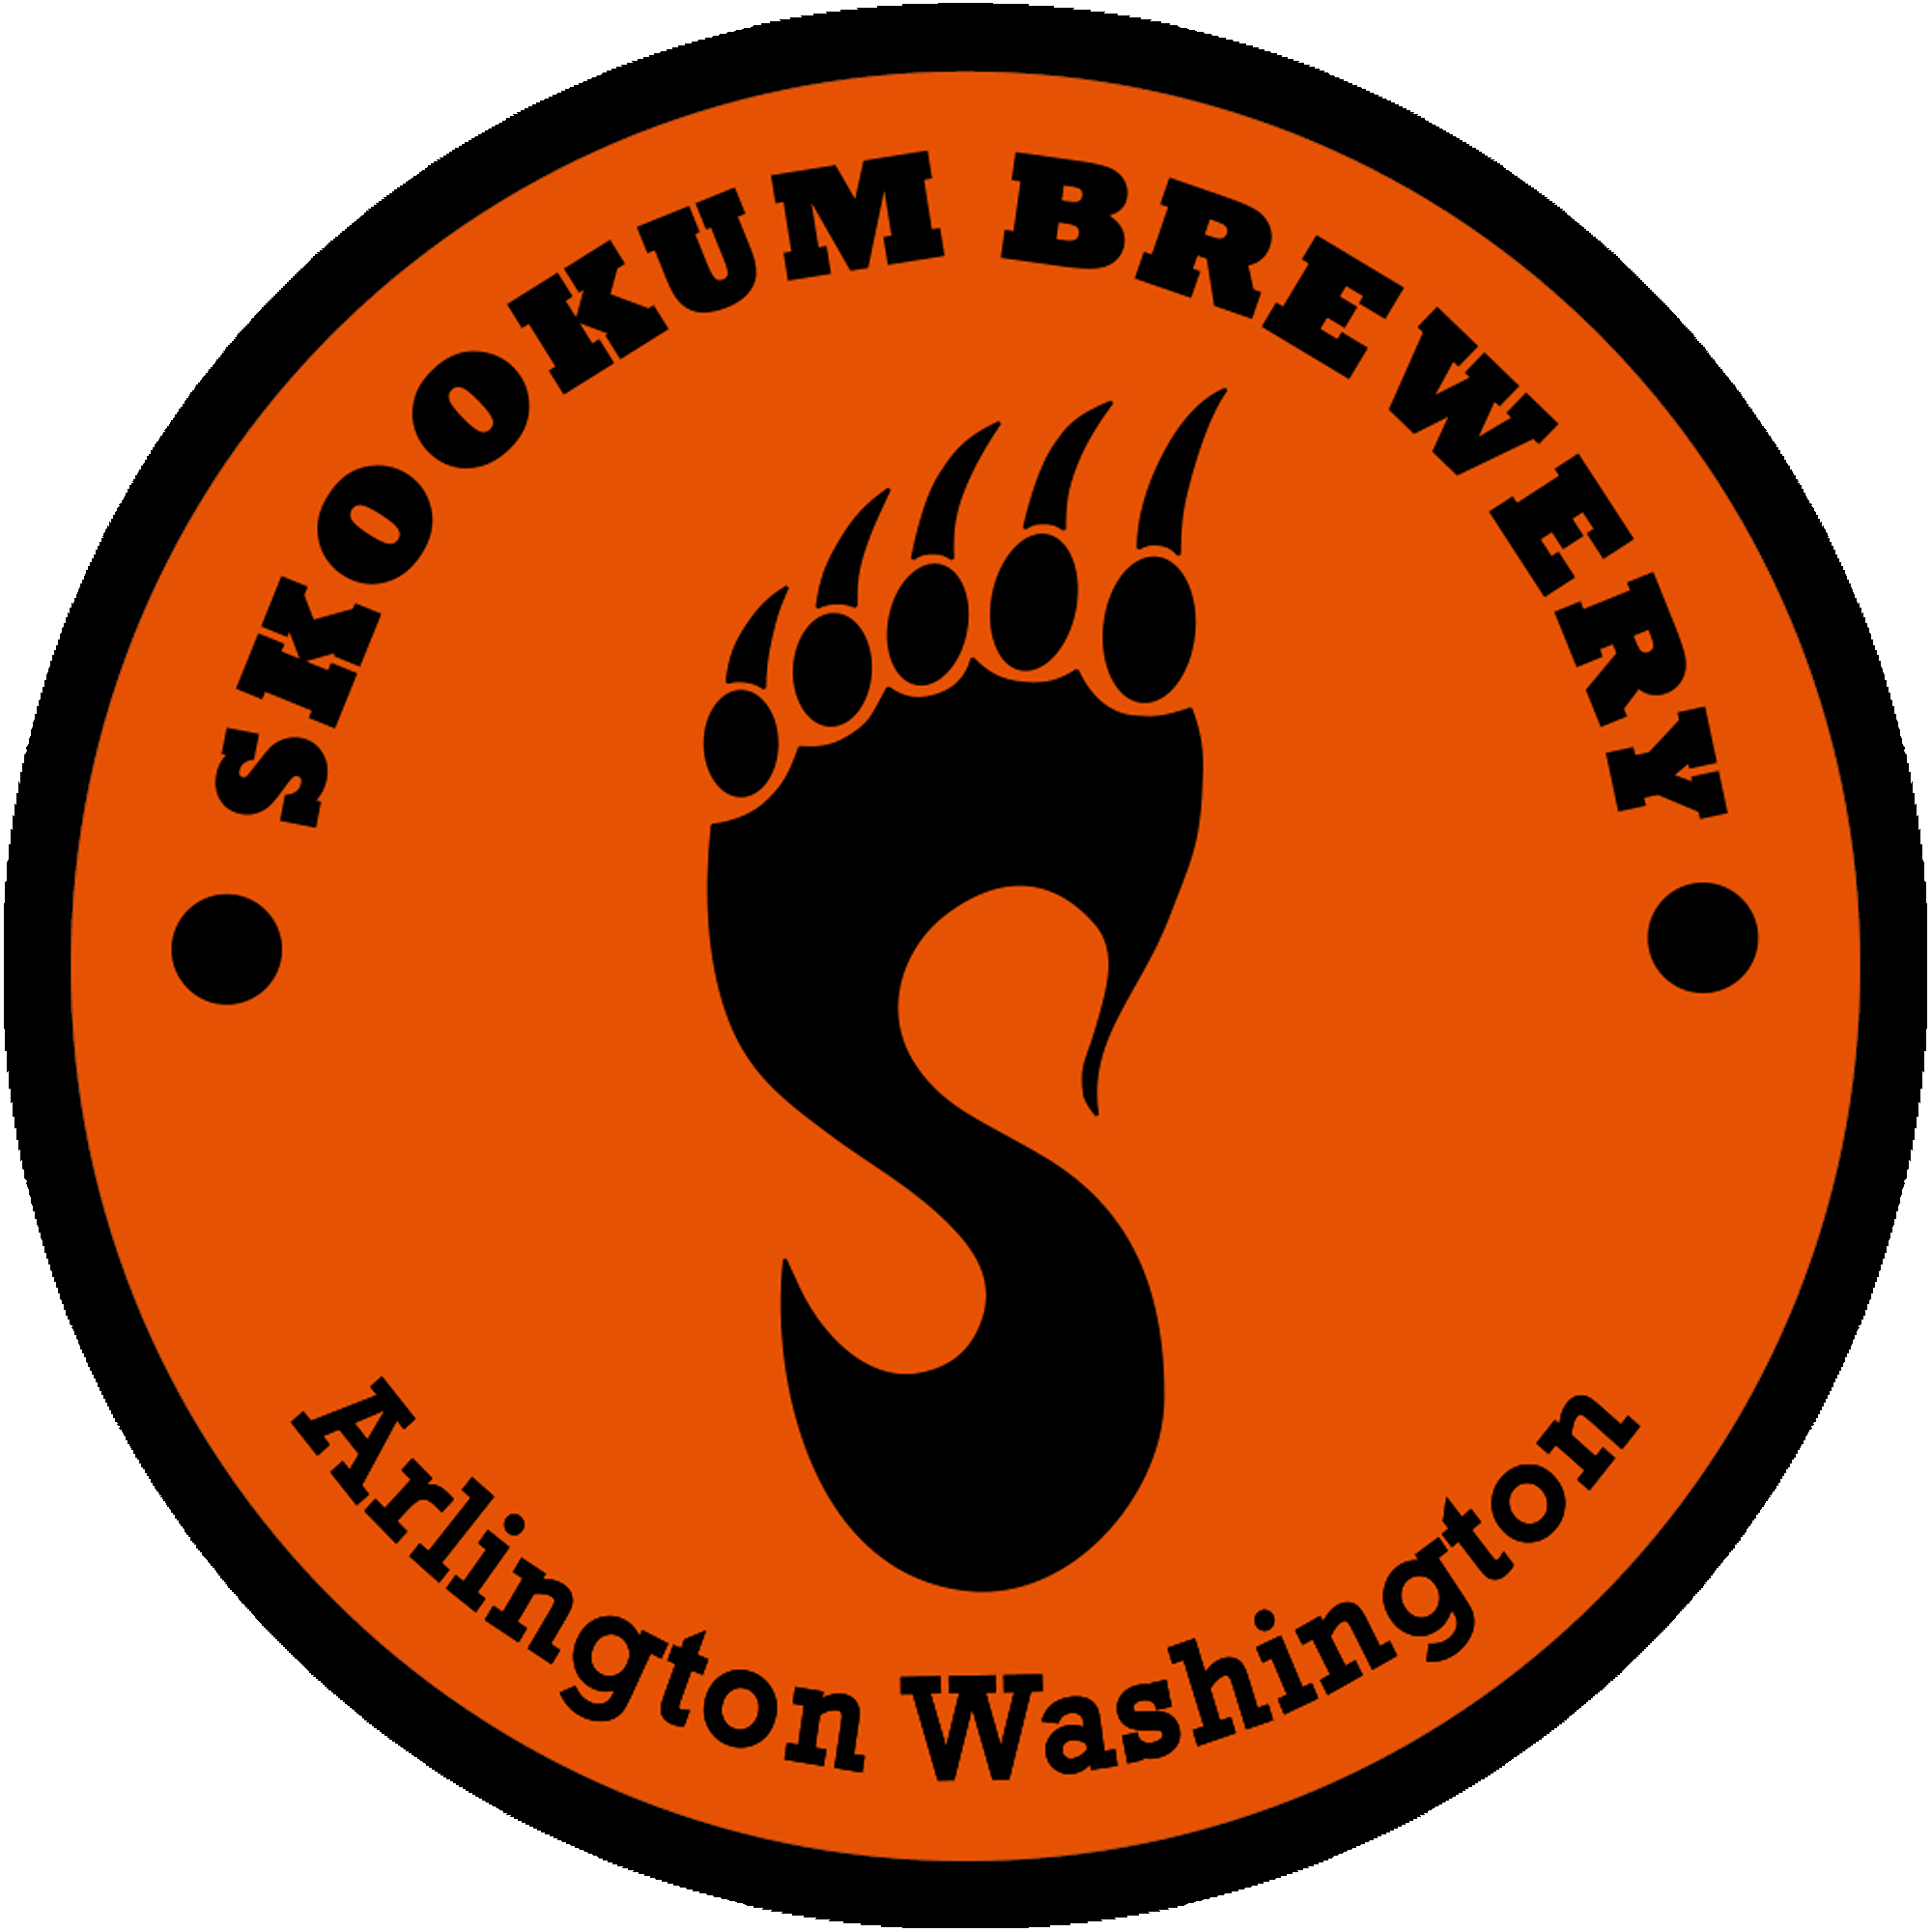 Wednesday, July 31st @ 6pm An Evening With Skookum Brewing